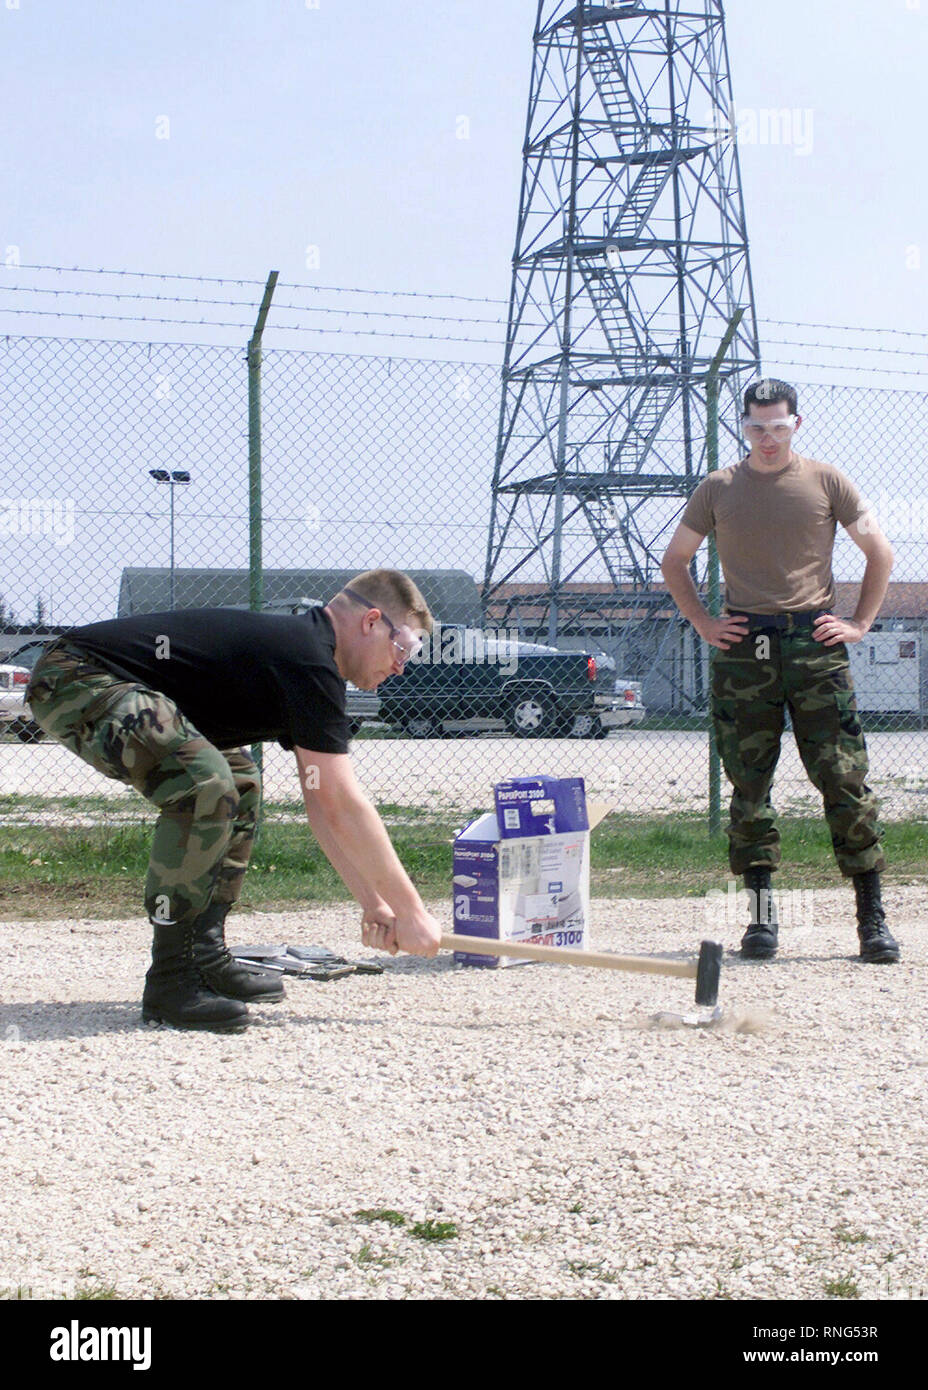 United States Air Force (USAF) Airman First Class (A1C) Jason Hirst, assigned to the 31st Communications Squadron (CS), Aviano Air Base, Italy, smashes a computer hard drive with a sledge hammer in order to render destroy it, as A1C Aaron Billingsley, observes. - Stock Image